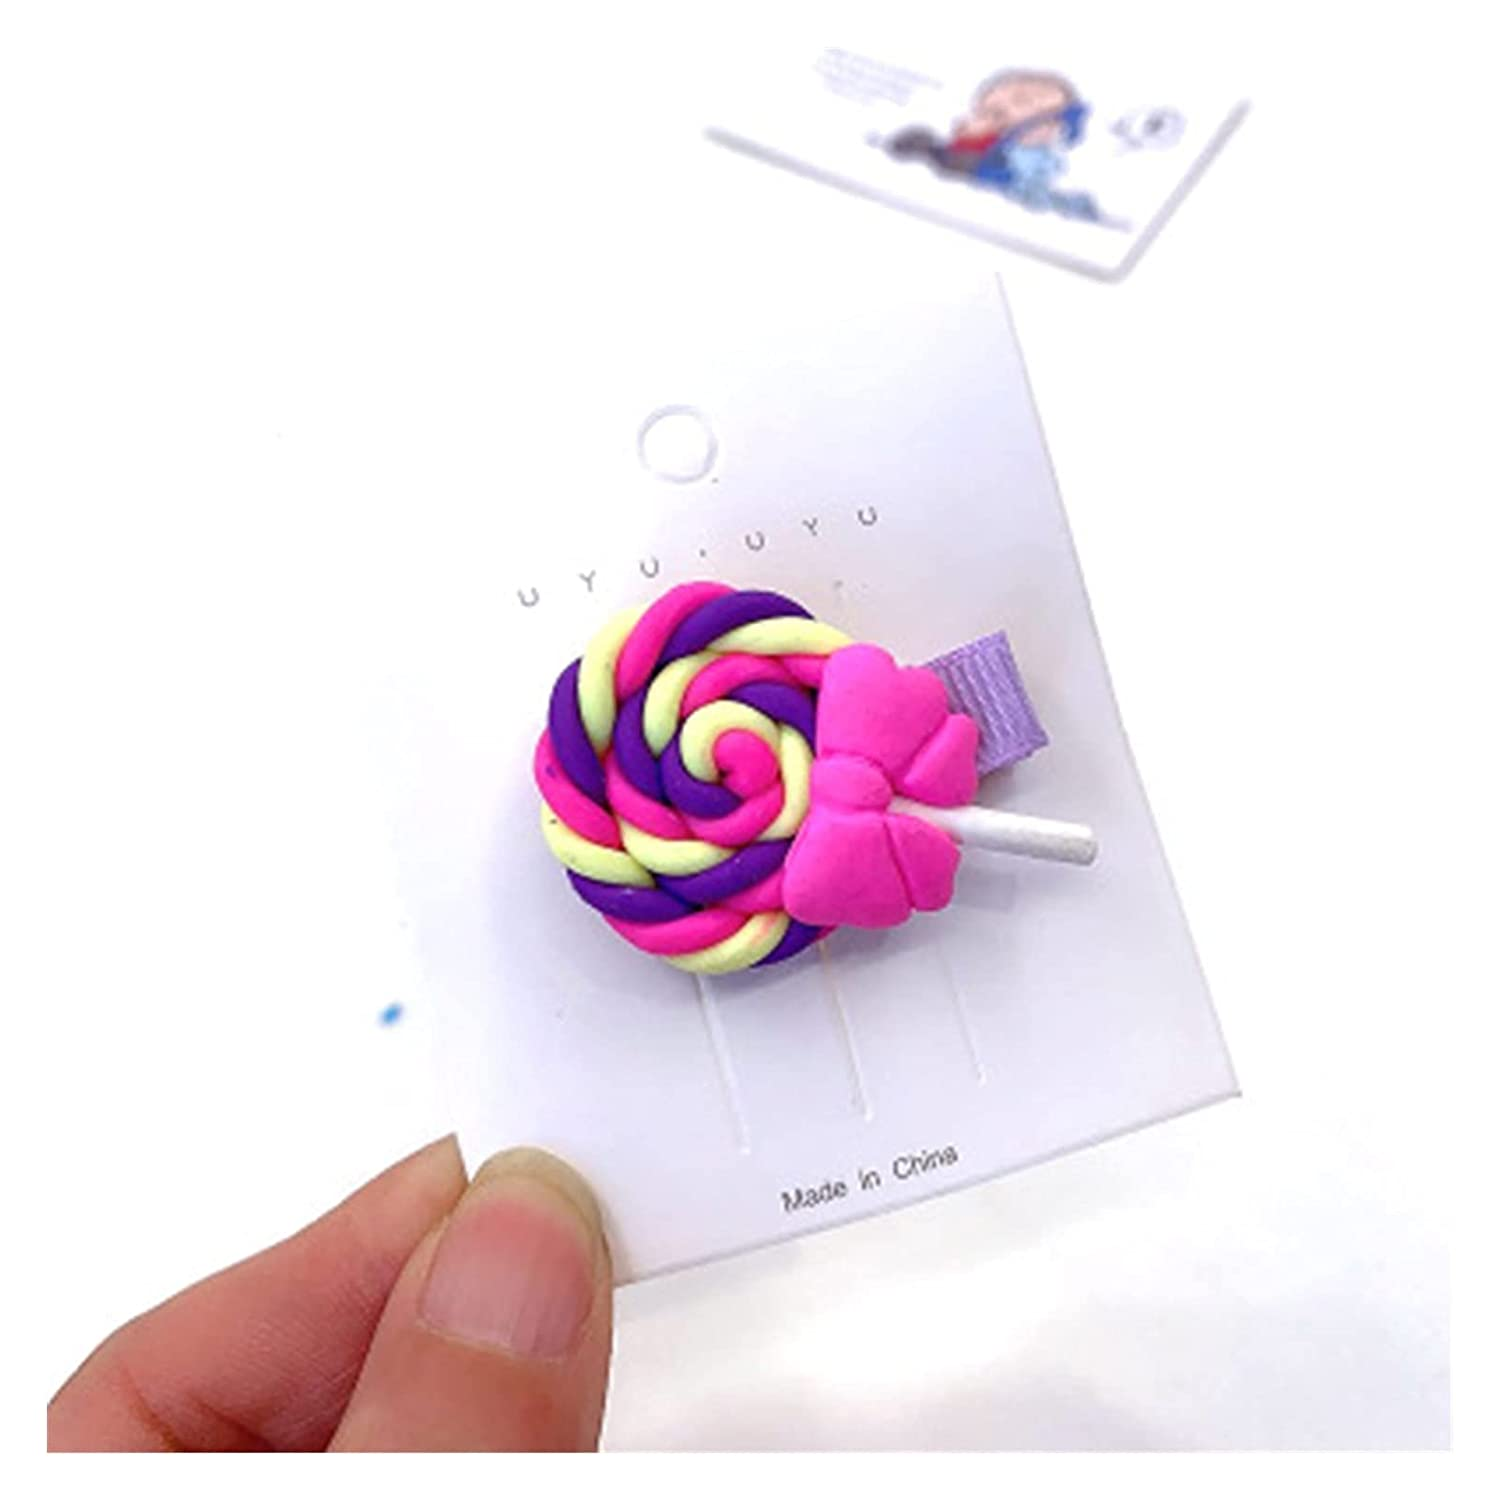 Hair accessories Max 54% OFF 2pcs Cute LollipopPopsicles Max 84% OFF Hairpi Kids Colored